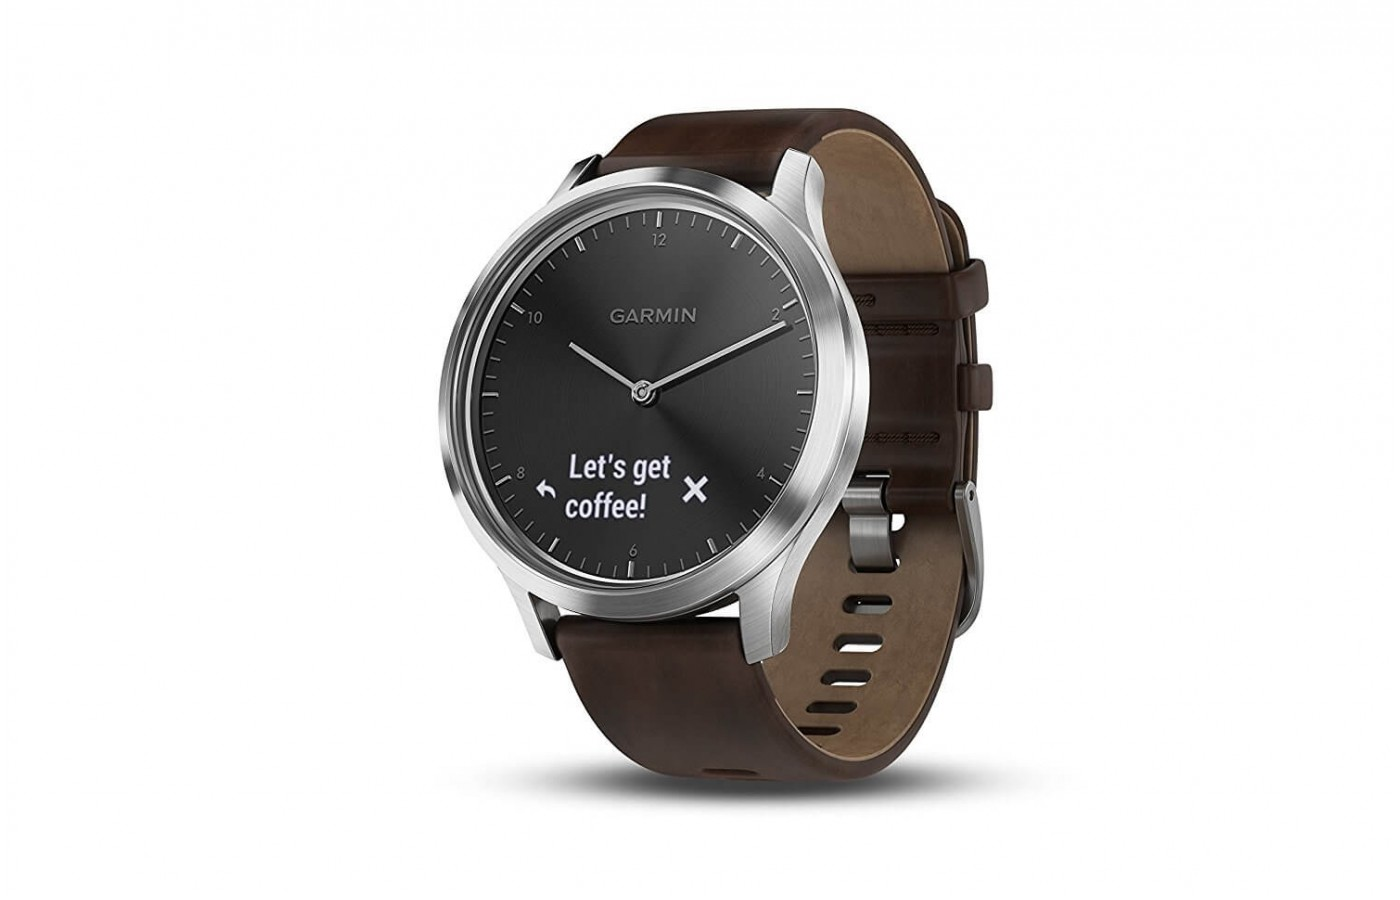 The Garmin Vivomove HR is TrueUP and MoveIQ enabled